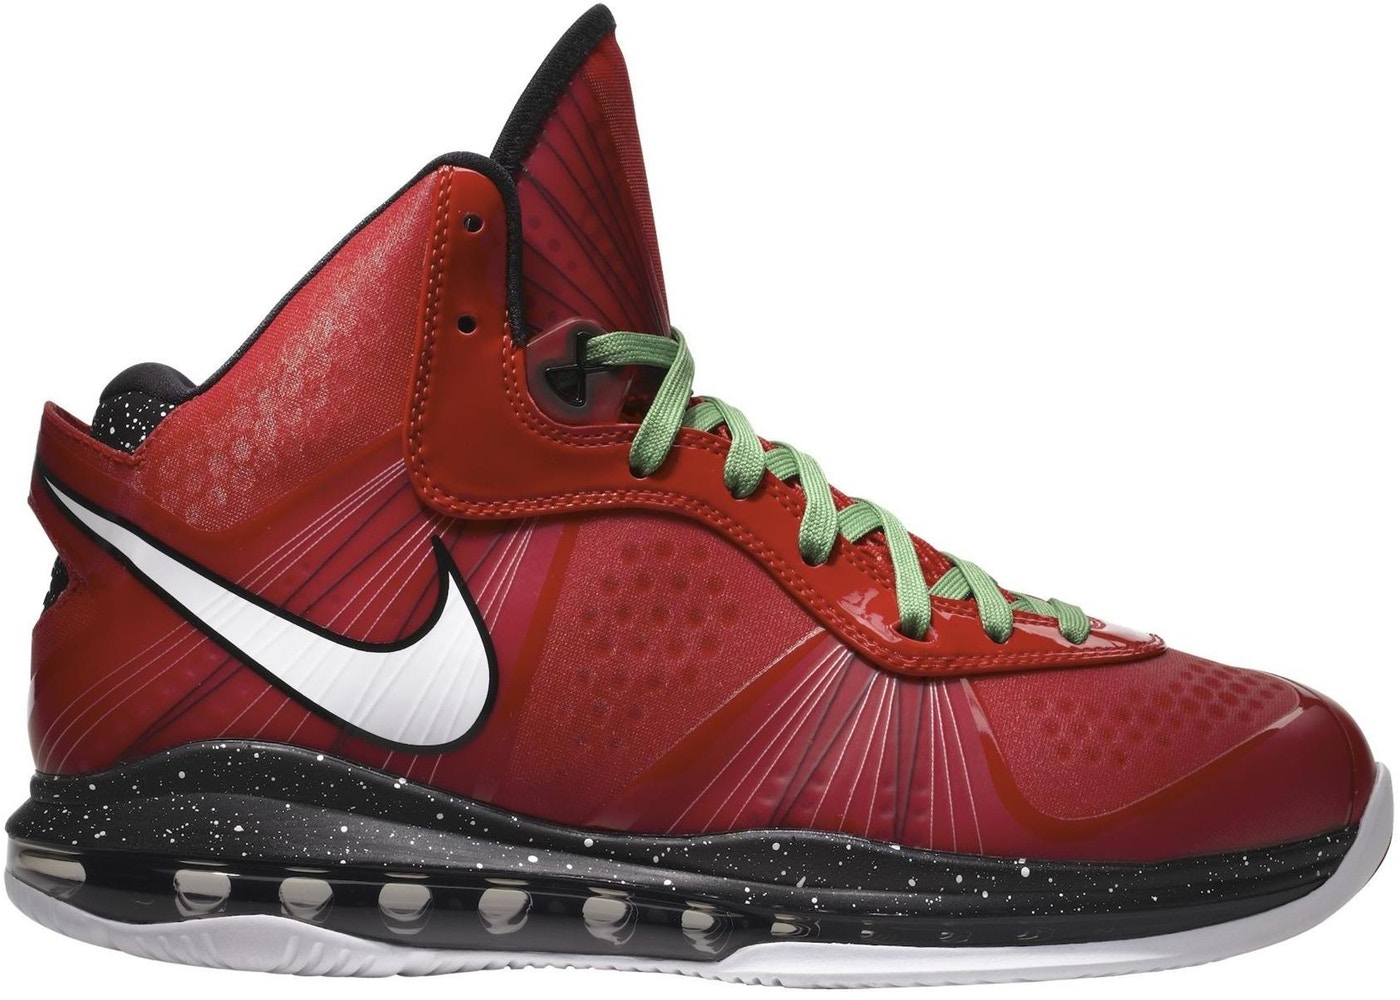 new styles 3d876 3ff6f LeBron 8 V 2 Christmas - 429676-600